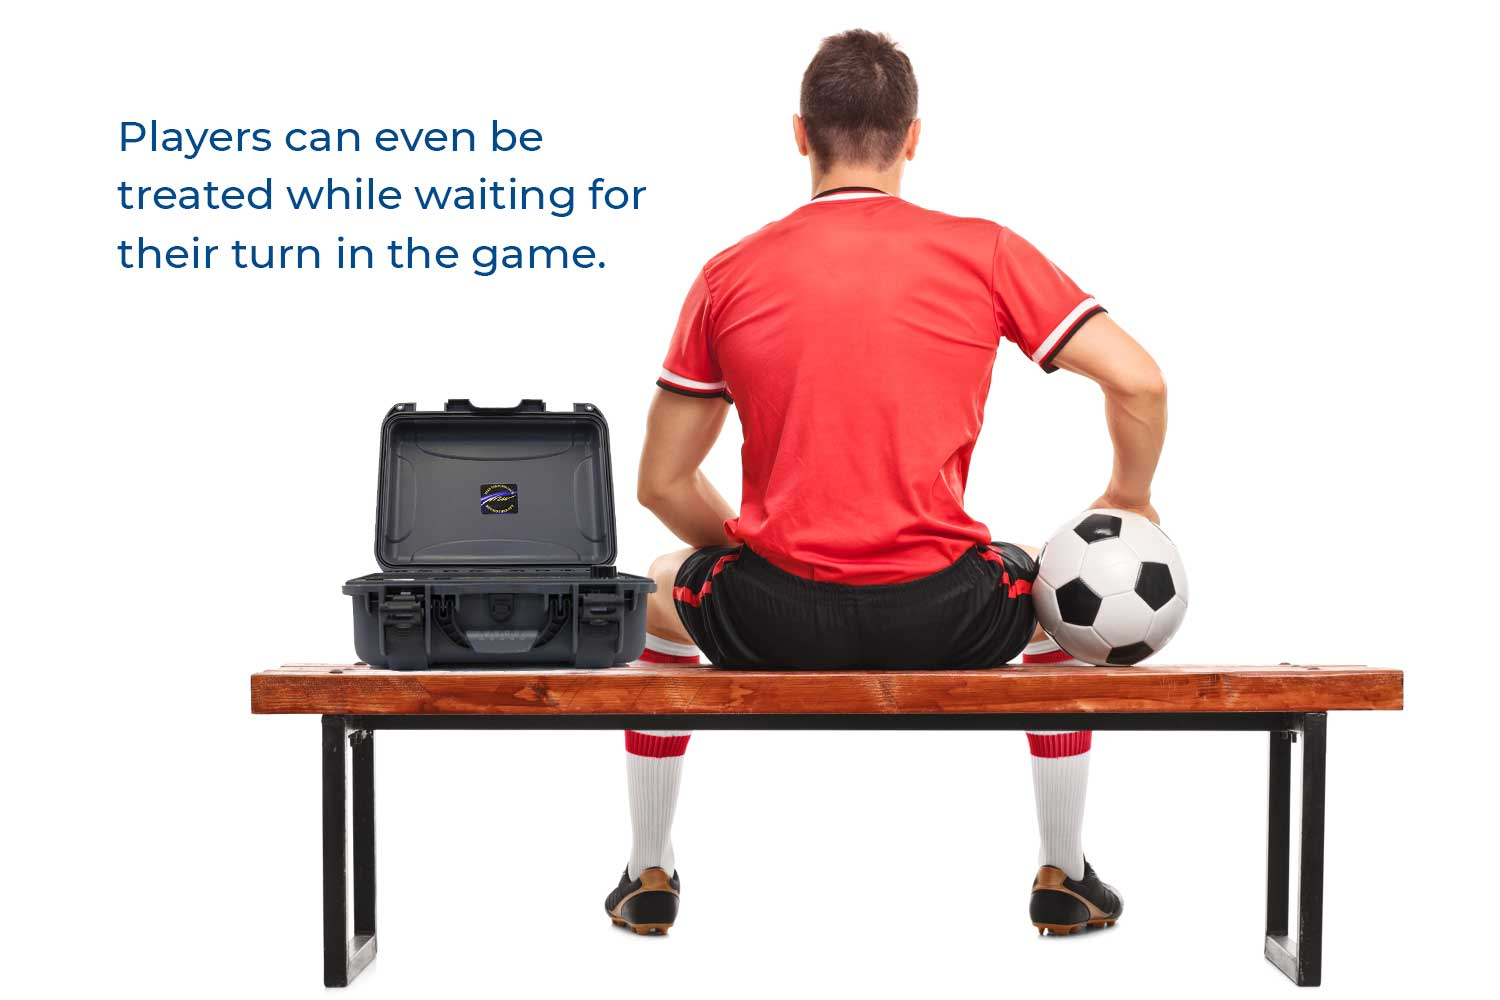 Players can even be treated while waiting for their turn in the game.